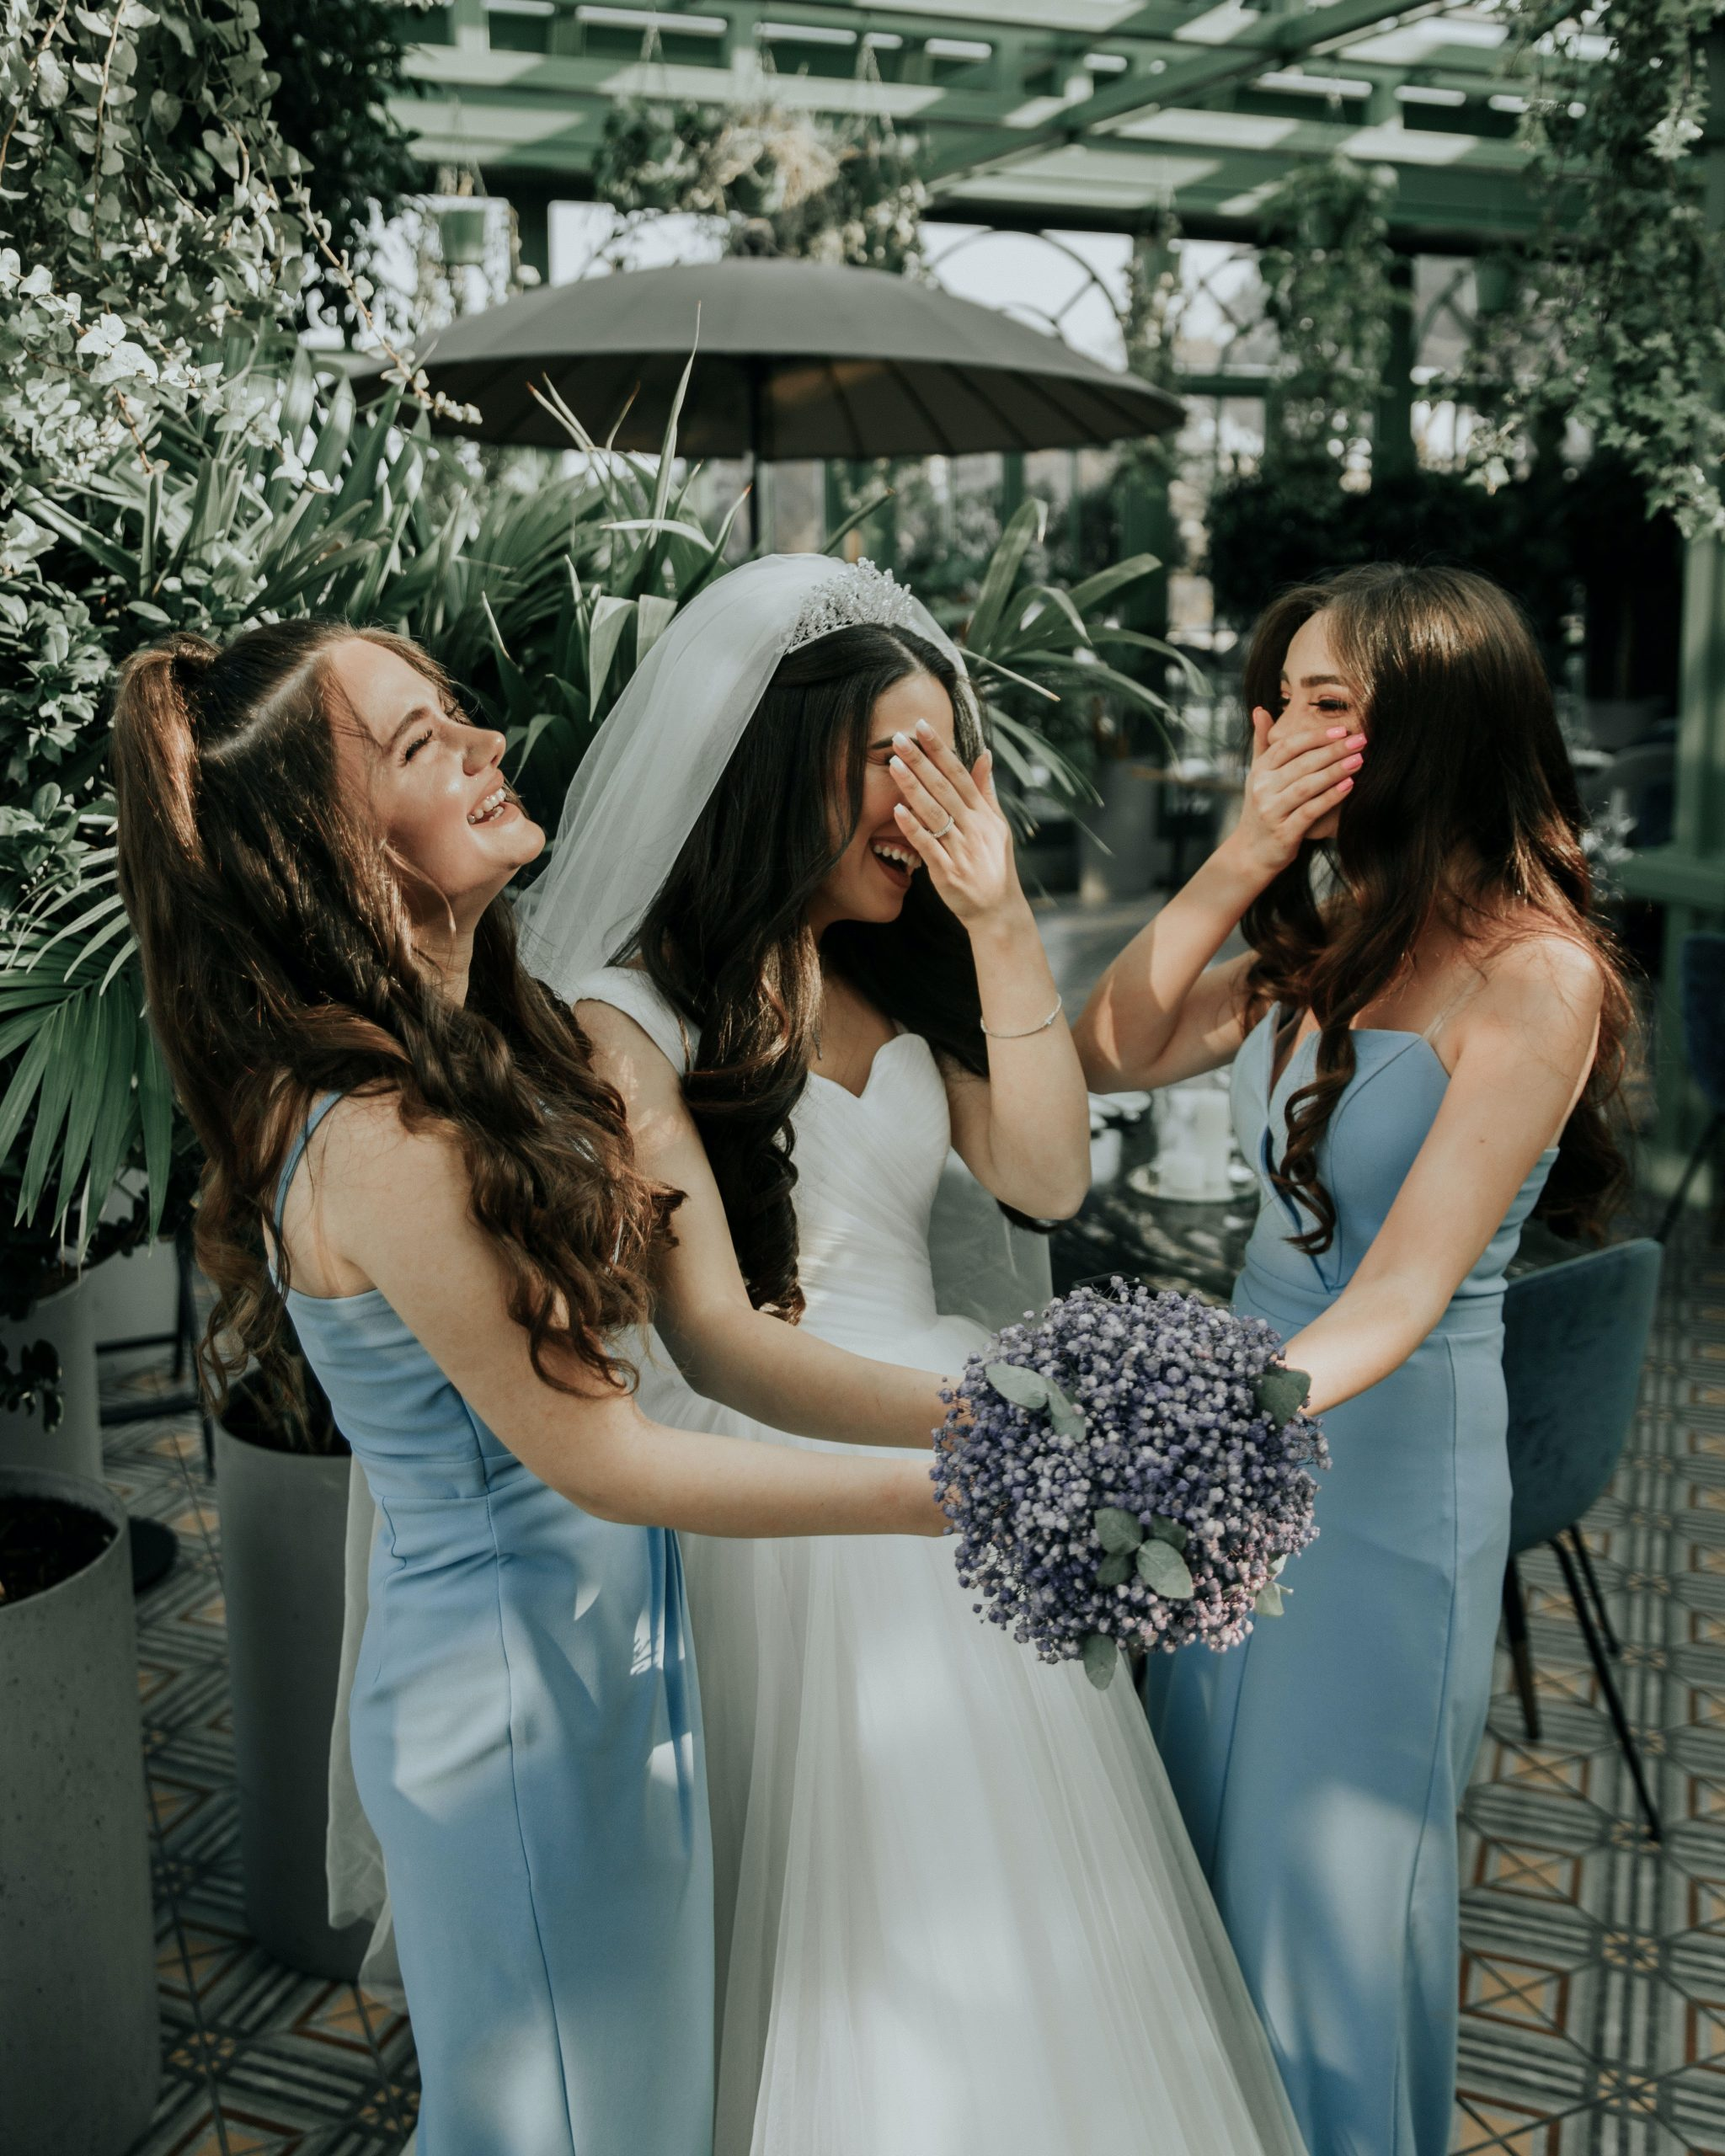 A bride and 2 bridesmaids laughing